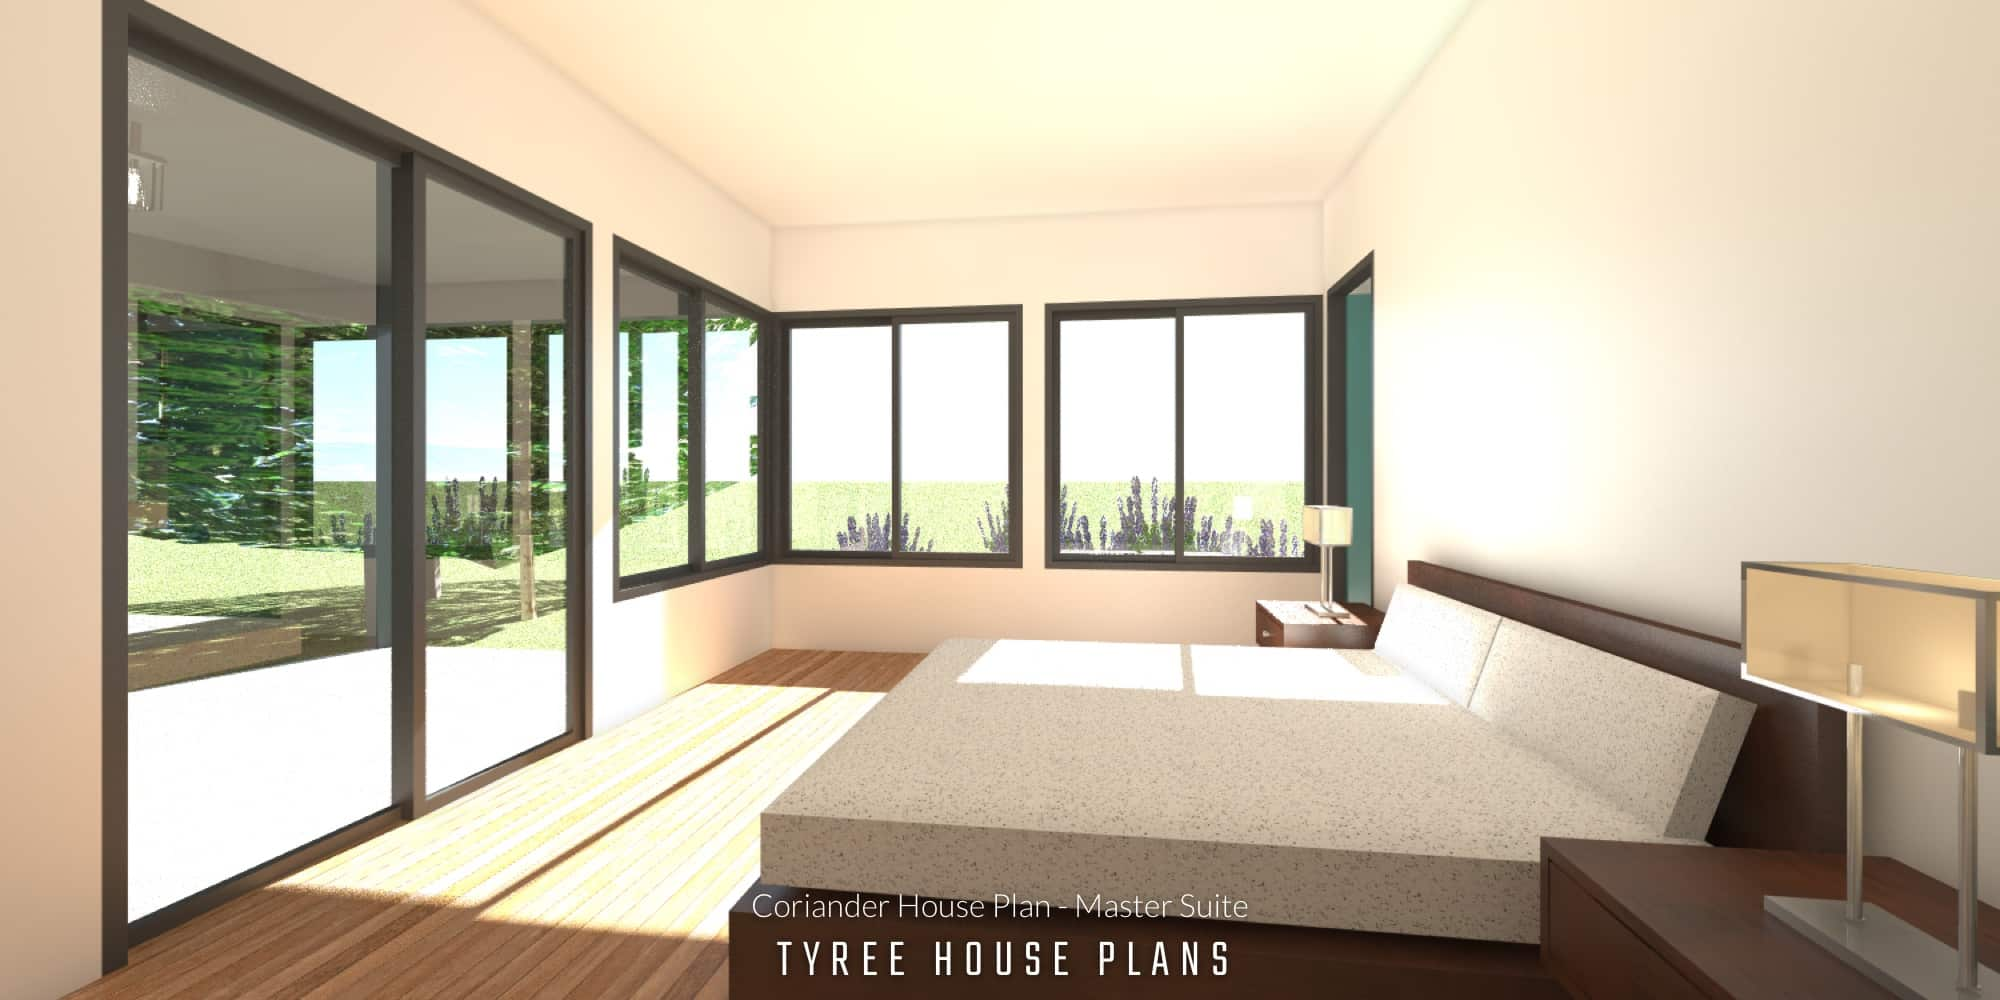 Master Suite - Coriander House Plan by Tyree House Plans